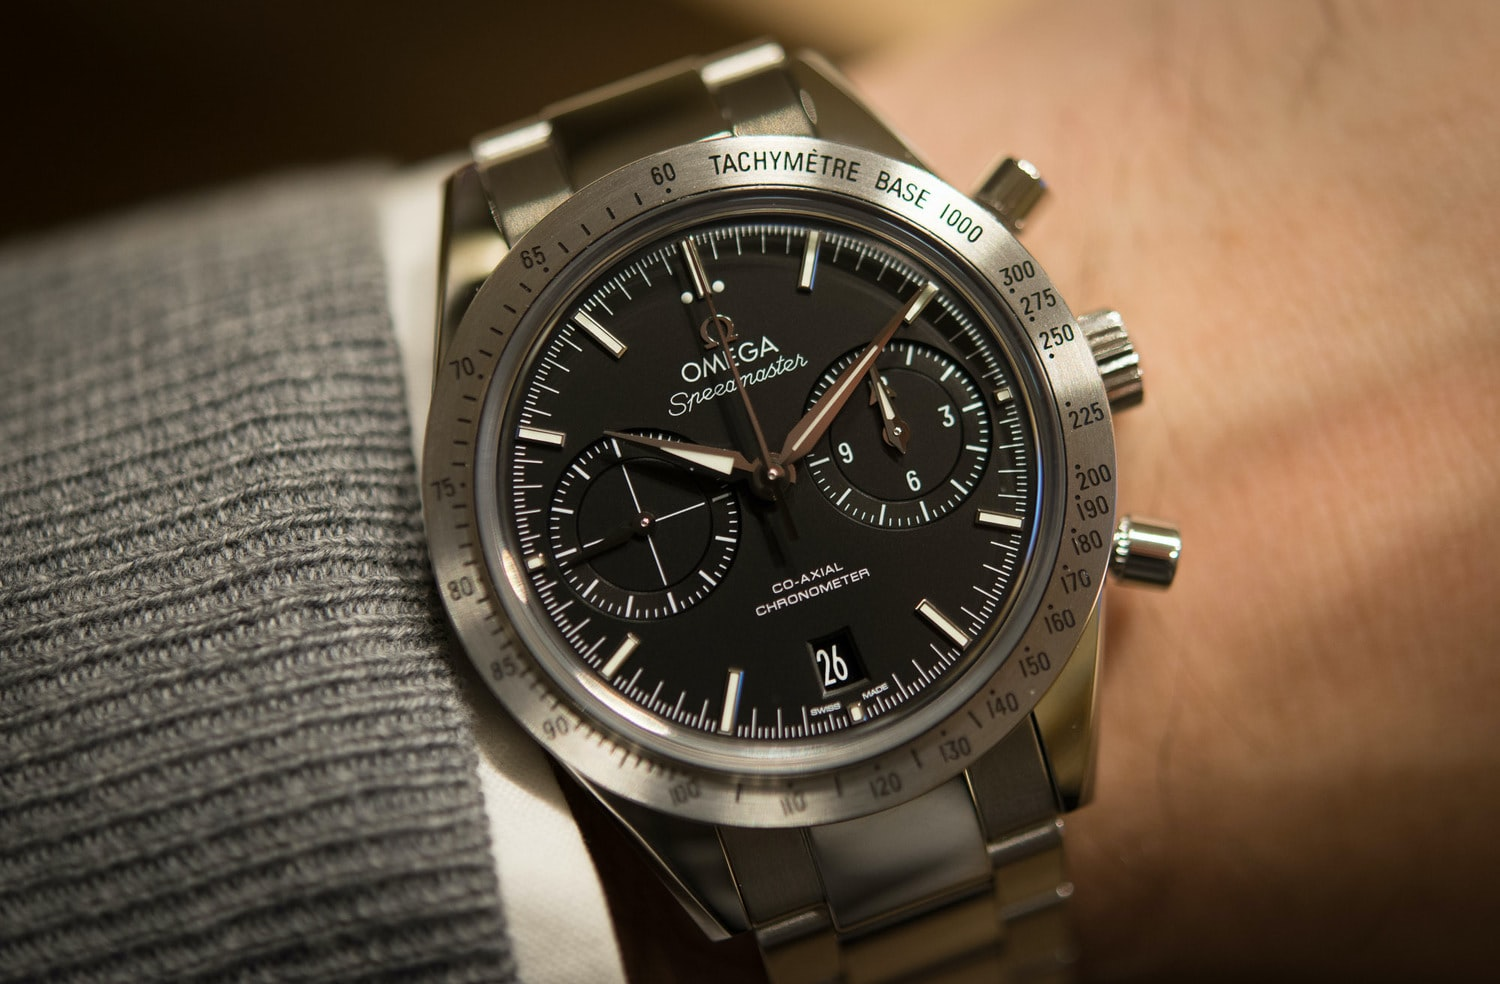 Baselworld 2015 - Omega Speedmaster 57 Co-Axial revisited with ...